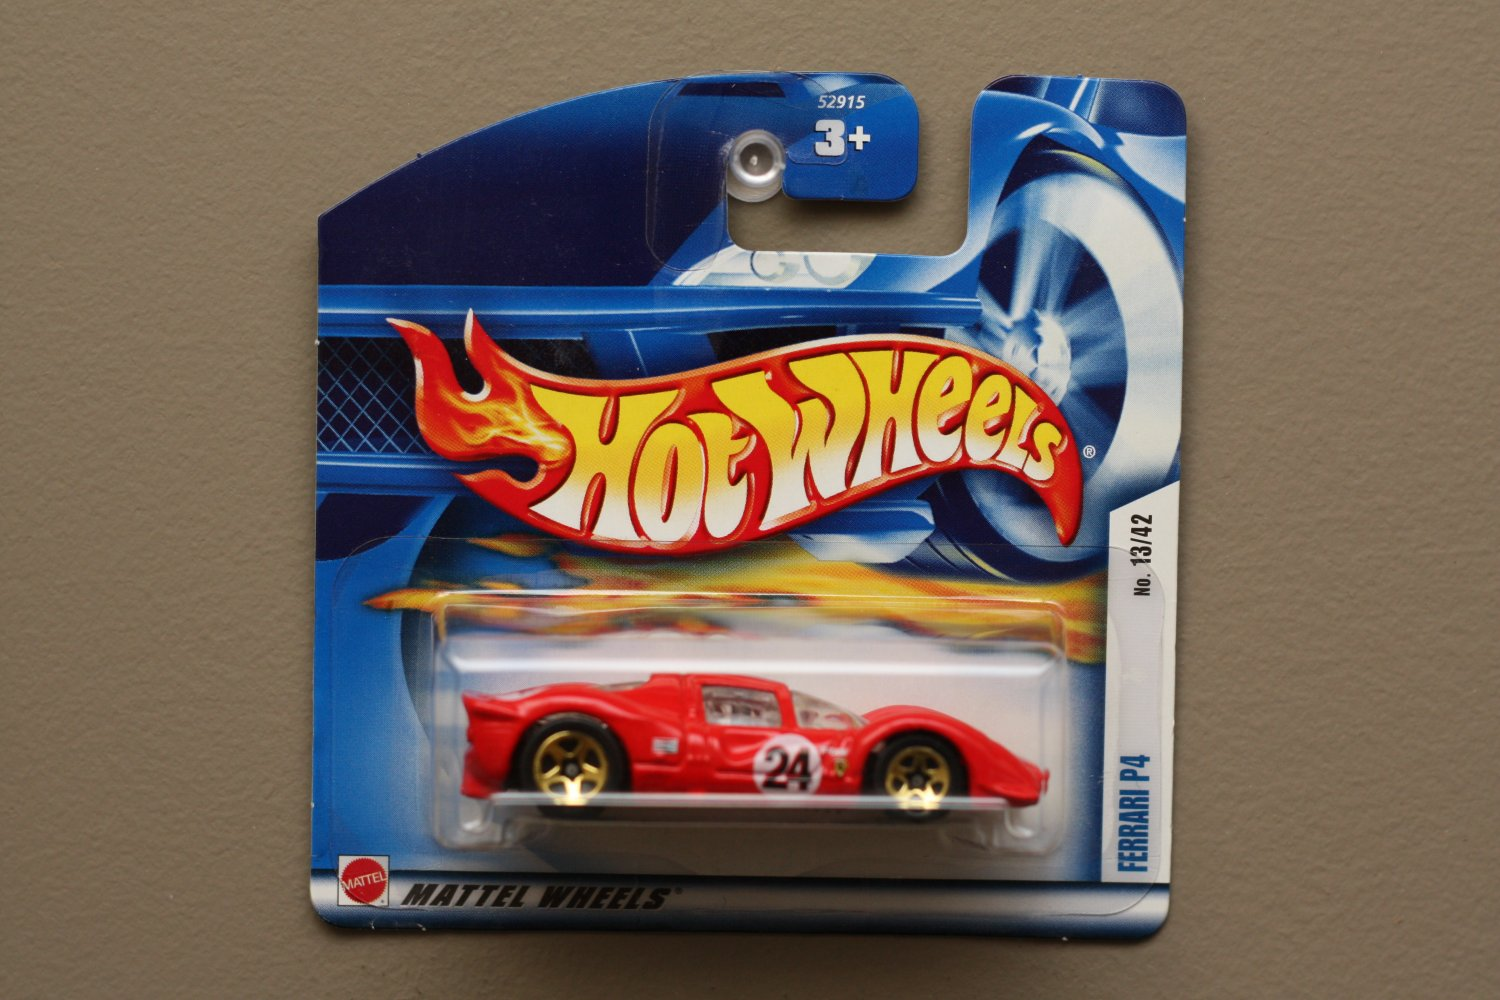 Hot Wheels 2002 First Editions Ferrari P4 (red)